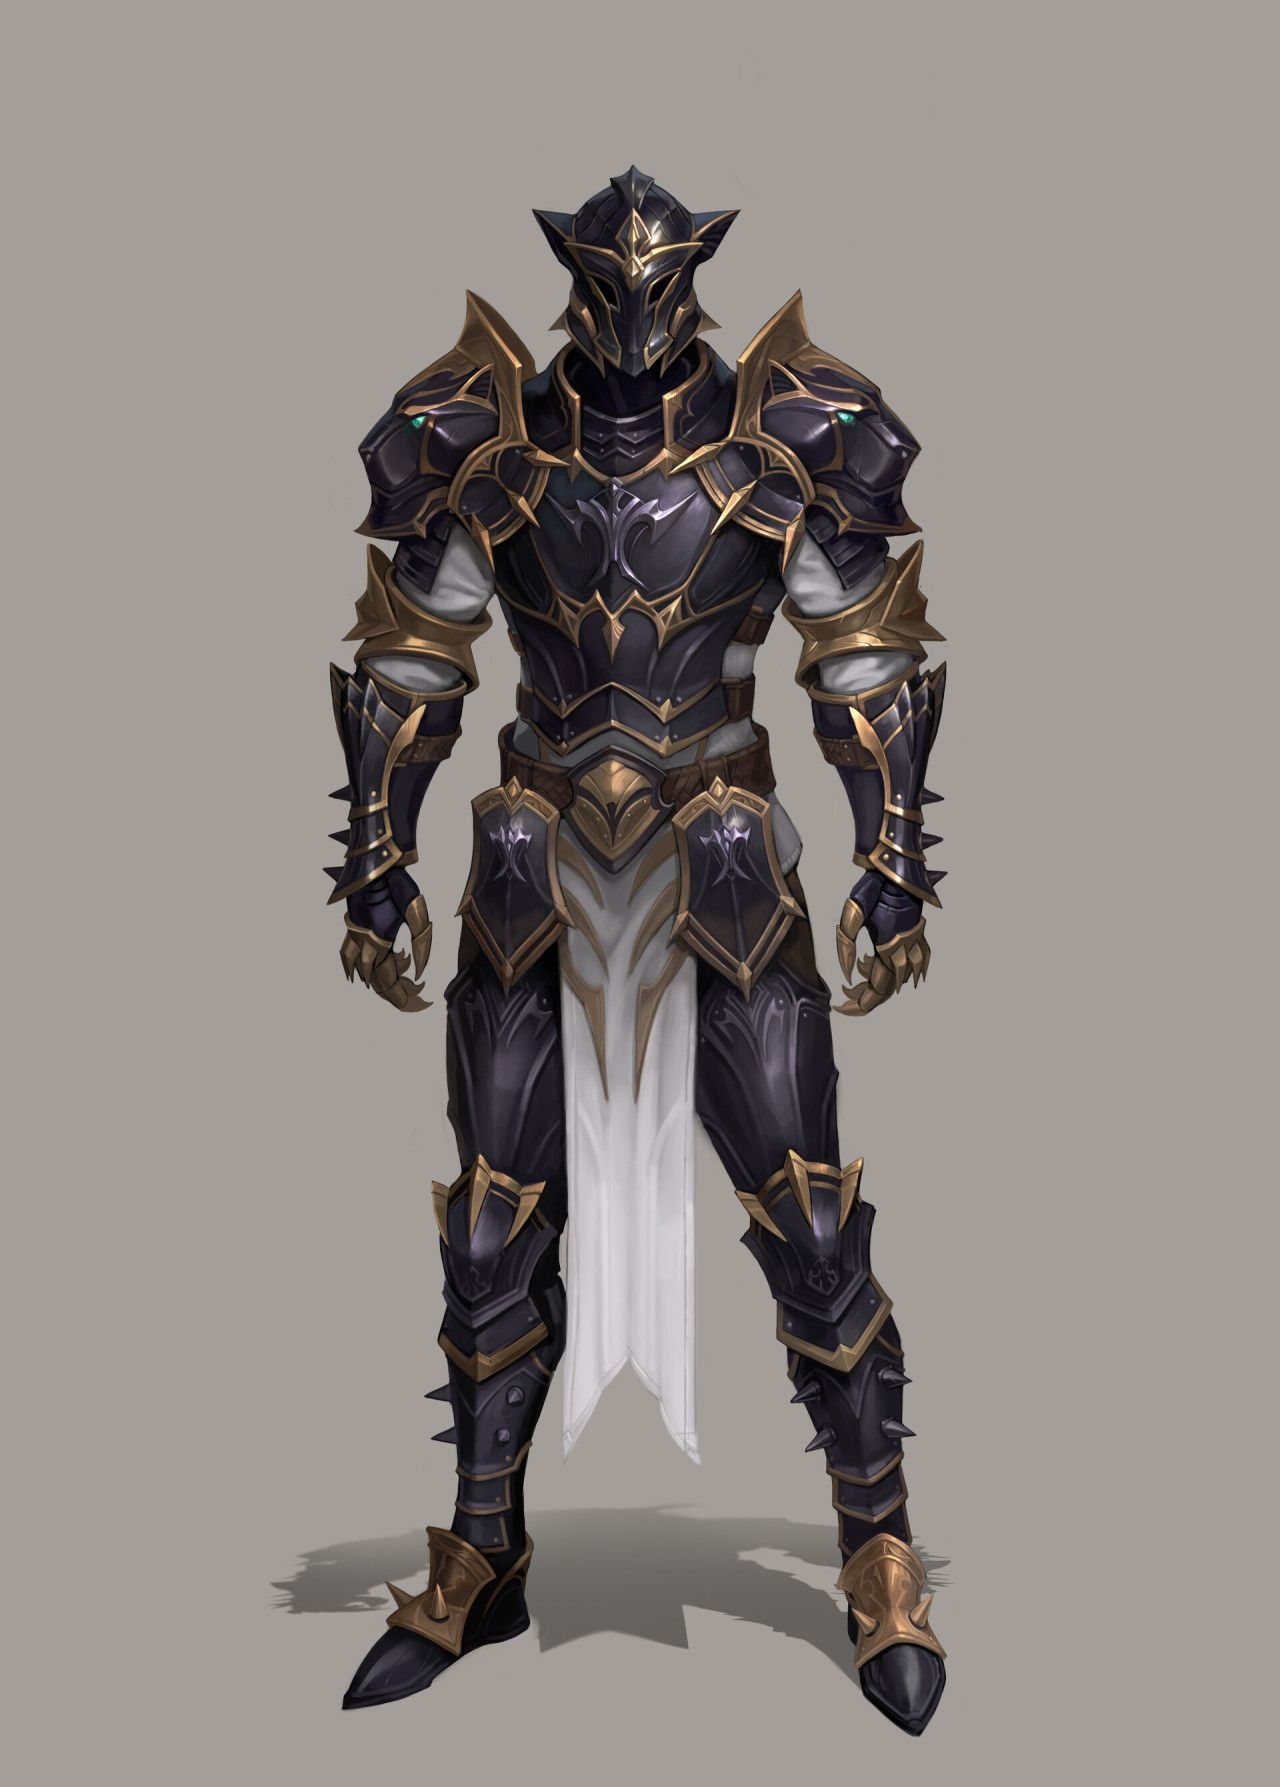 Scifi Fantasy Horror Com Fantasy Armor Fantasy Character Design Dragon Armor See what dragon armor games (dragonarmorgames) has discovered on pinterest, the world's biggest collection of ideas. pinterest